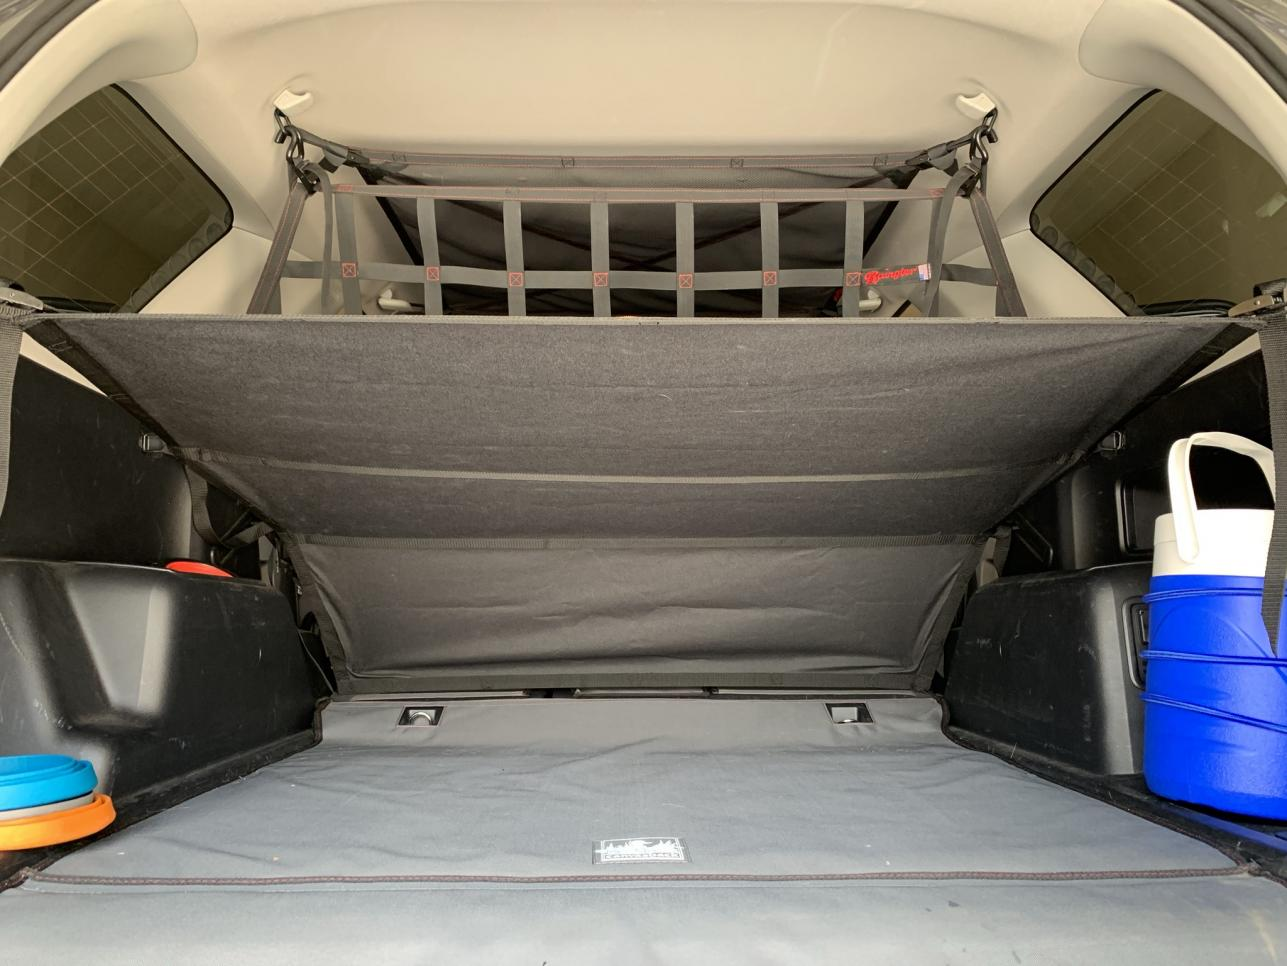 New Product:  Heavy-duty adjustable cargo cover-0vsine4-jpg